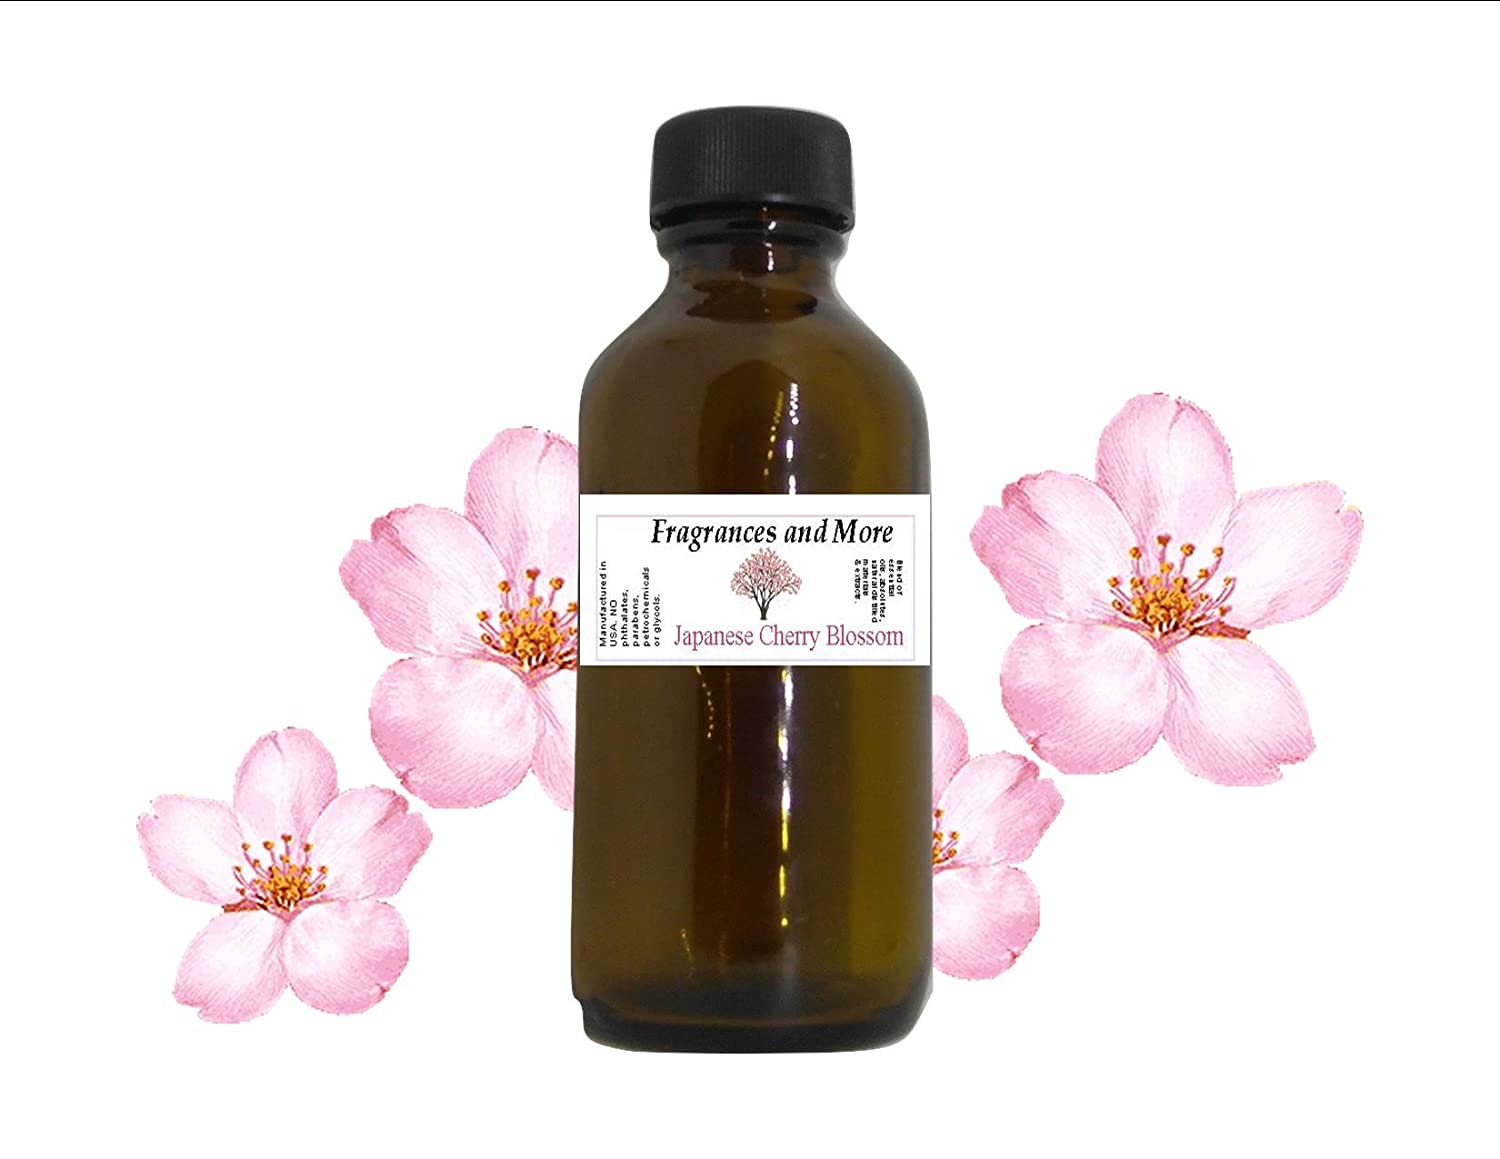 JAPANESE CHERRY BLOSSOM FRAGRANCE OIL | For Soap Making| Candle Making| For Use with Diffusers| Add to Bath & Body Products| Home and Office Scents| 2 oz amber glass bottle